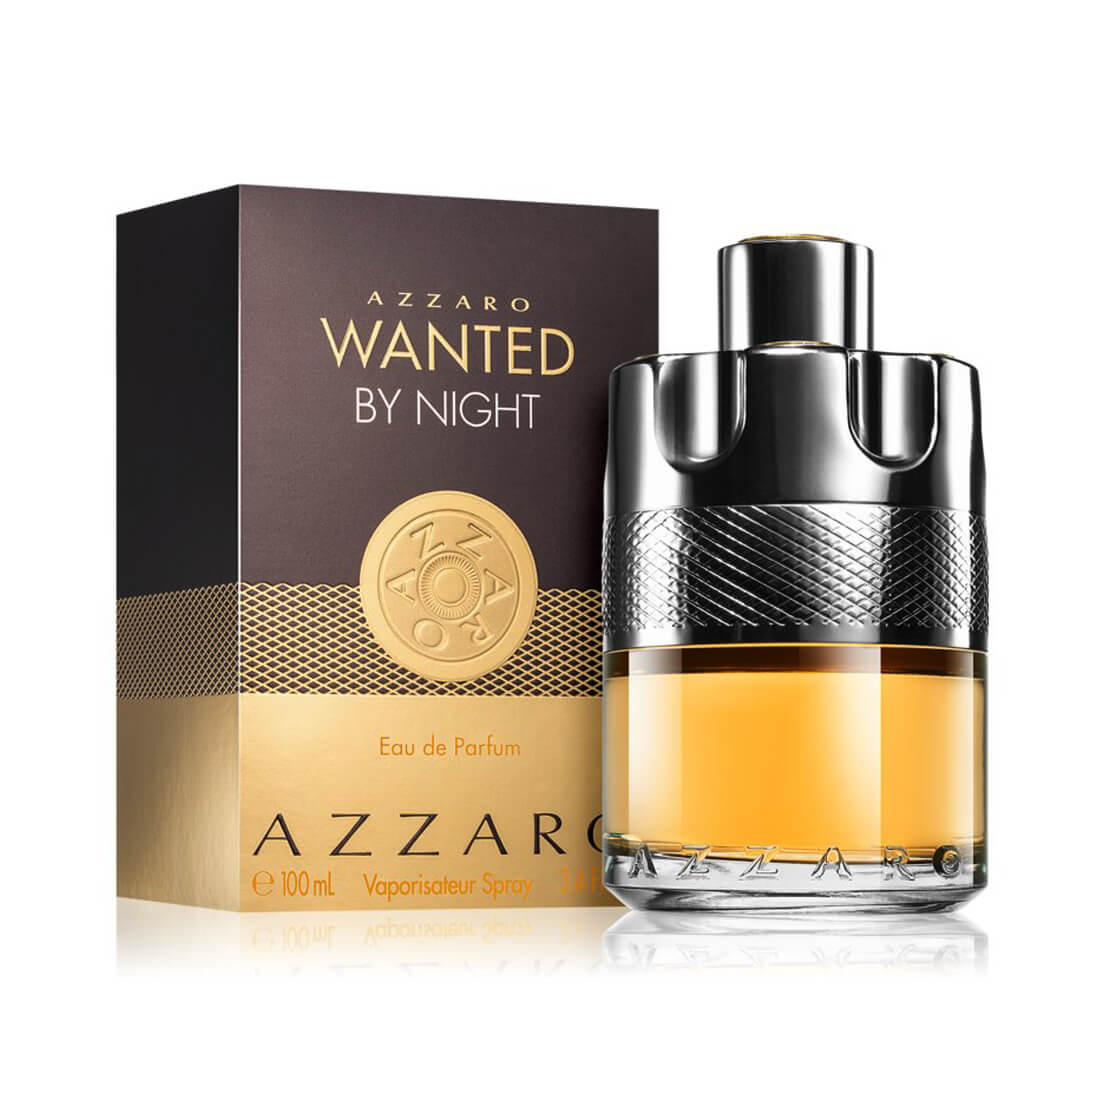 Azzaro Wanted By Night Eau de Perfume For Men 100ml